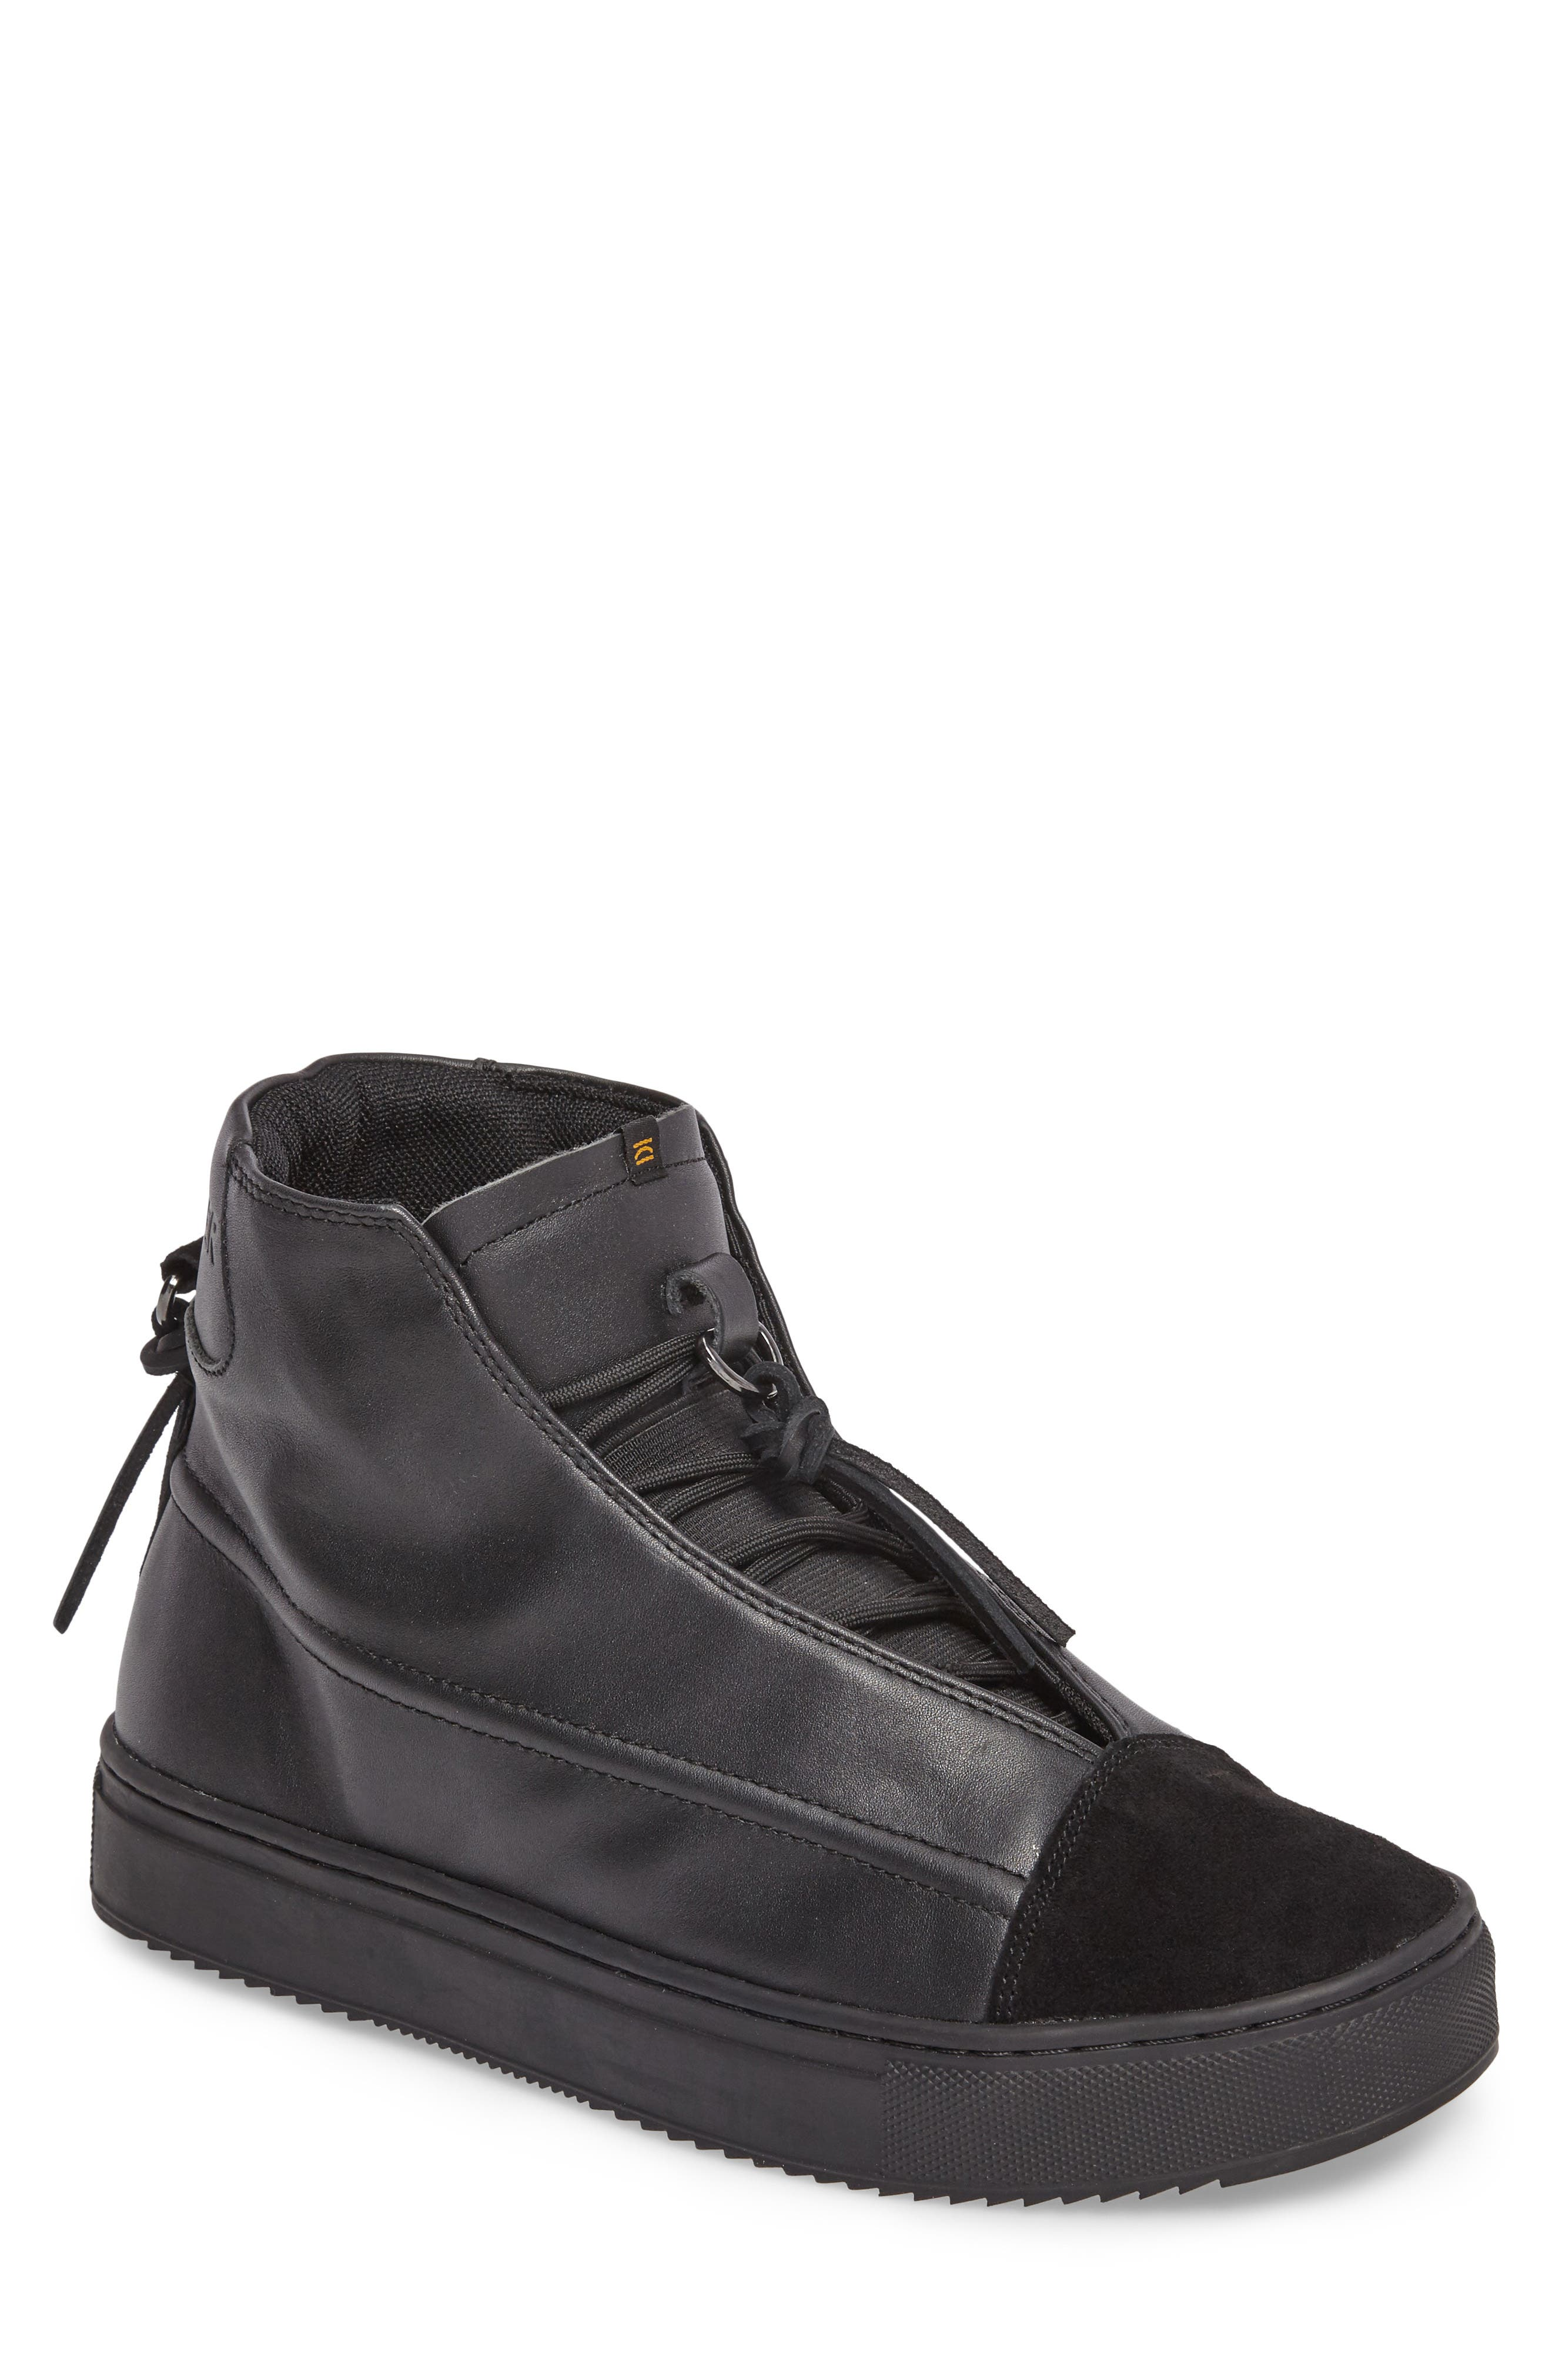 Sidney High Top Sneaker,                             Main thumbnail 1, color,                             001